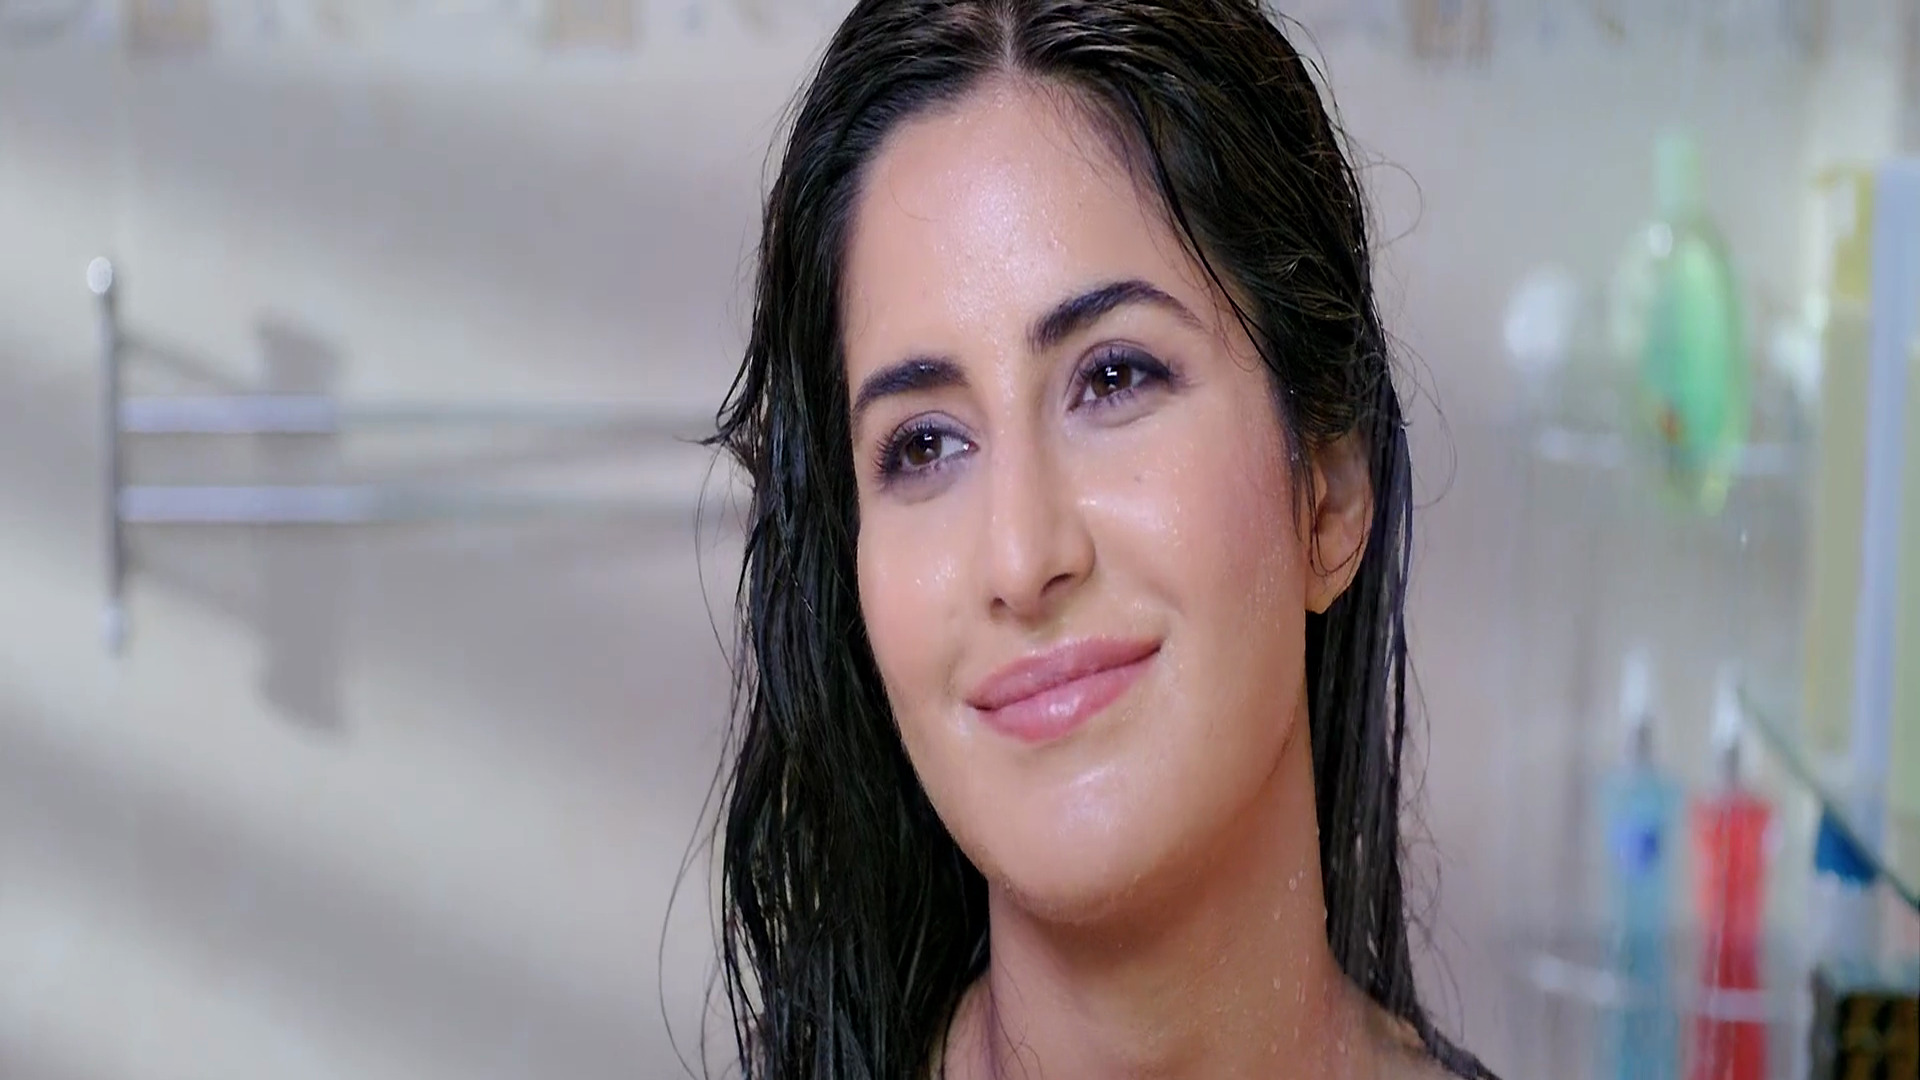 katrina kaif bollywood actress bathing scene hd wallpaper | hd